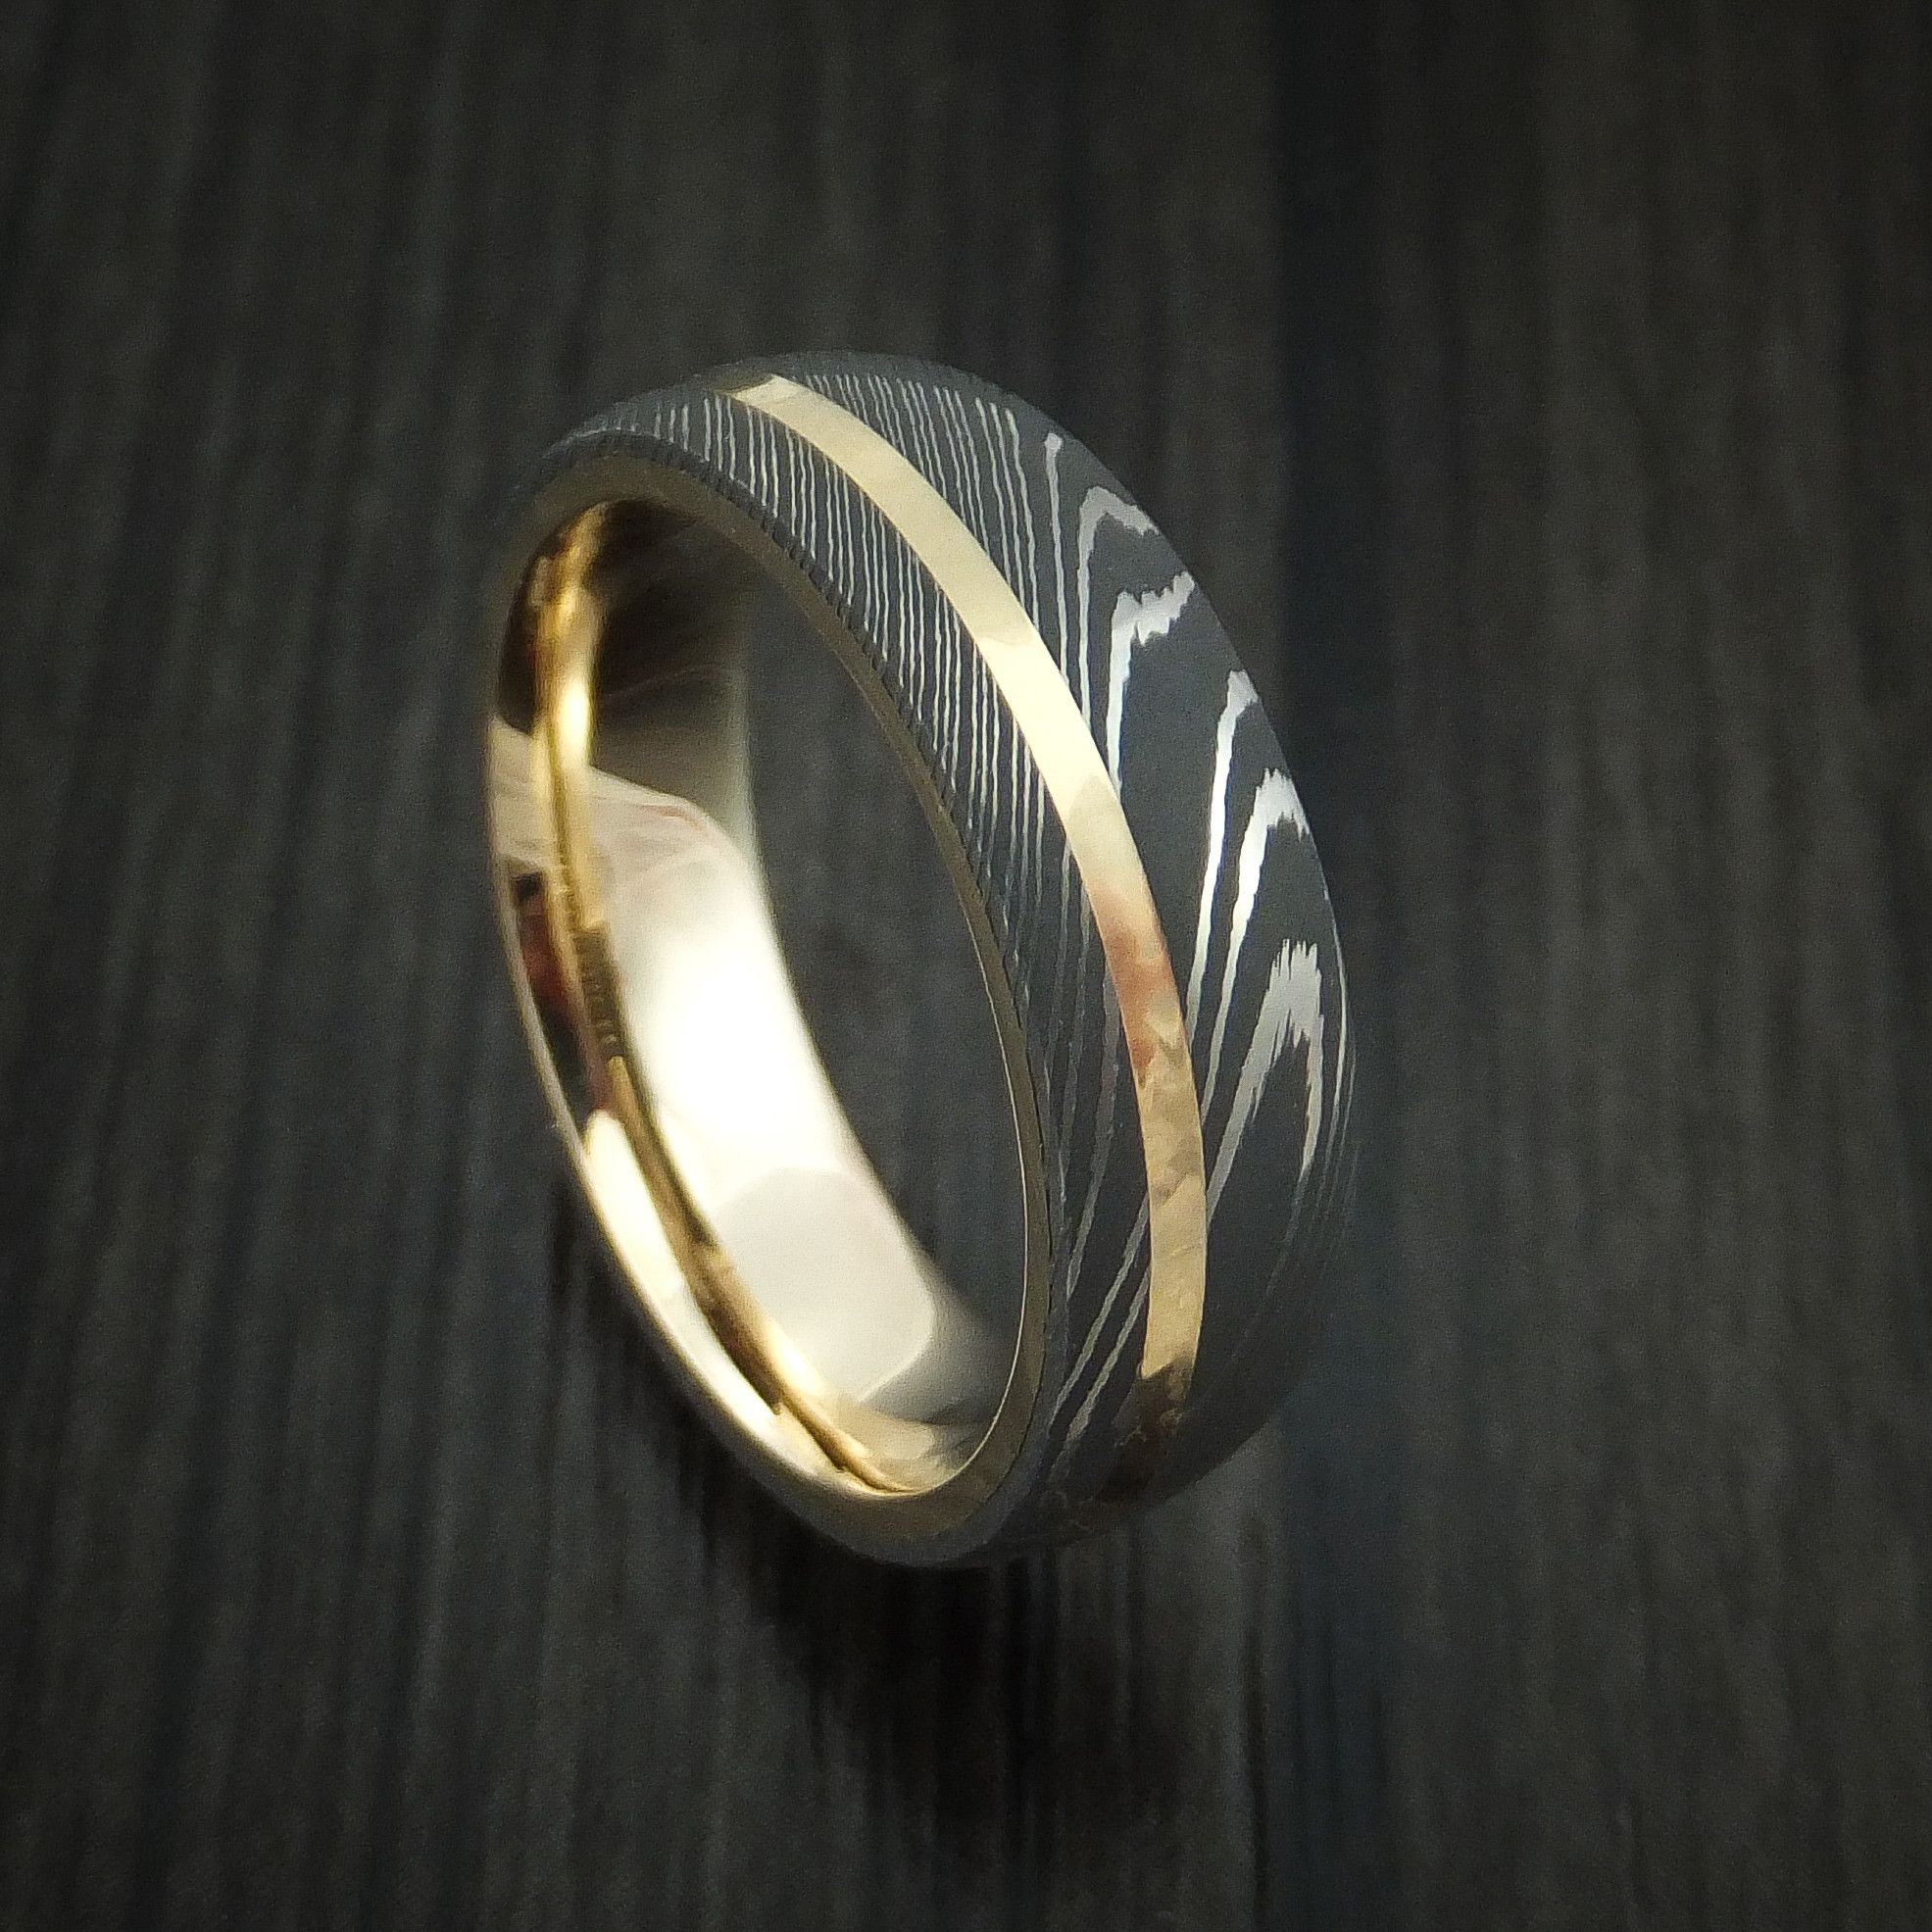 pin made custom damascus yellow rings wedding steel ring band gold blacksmith